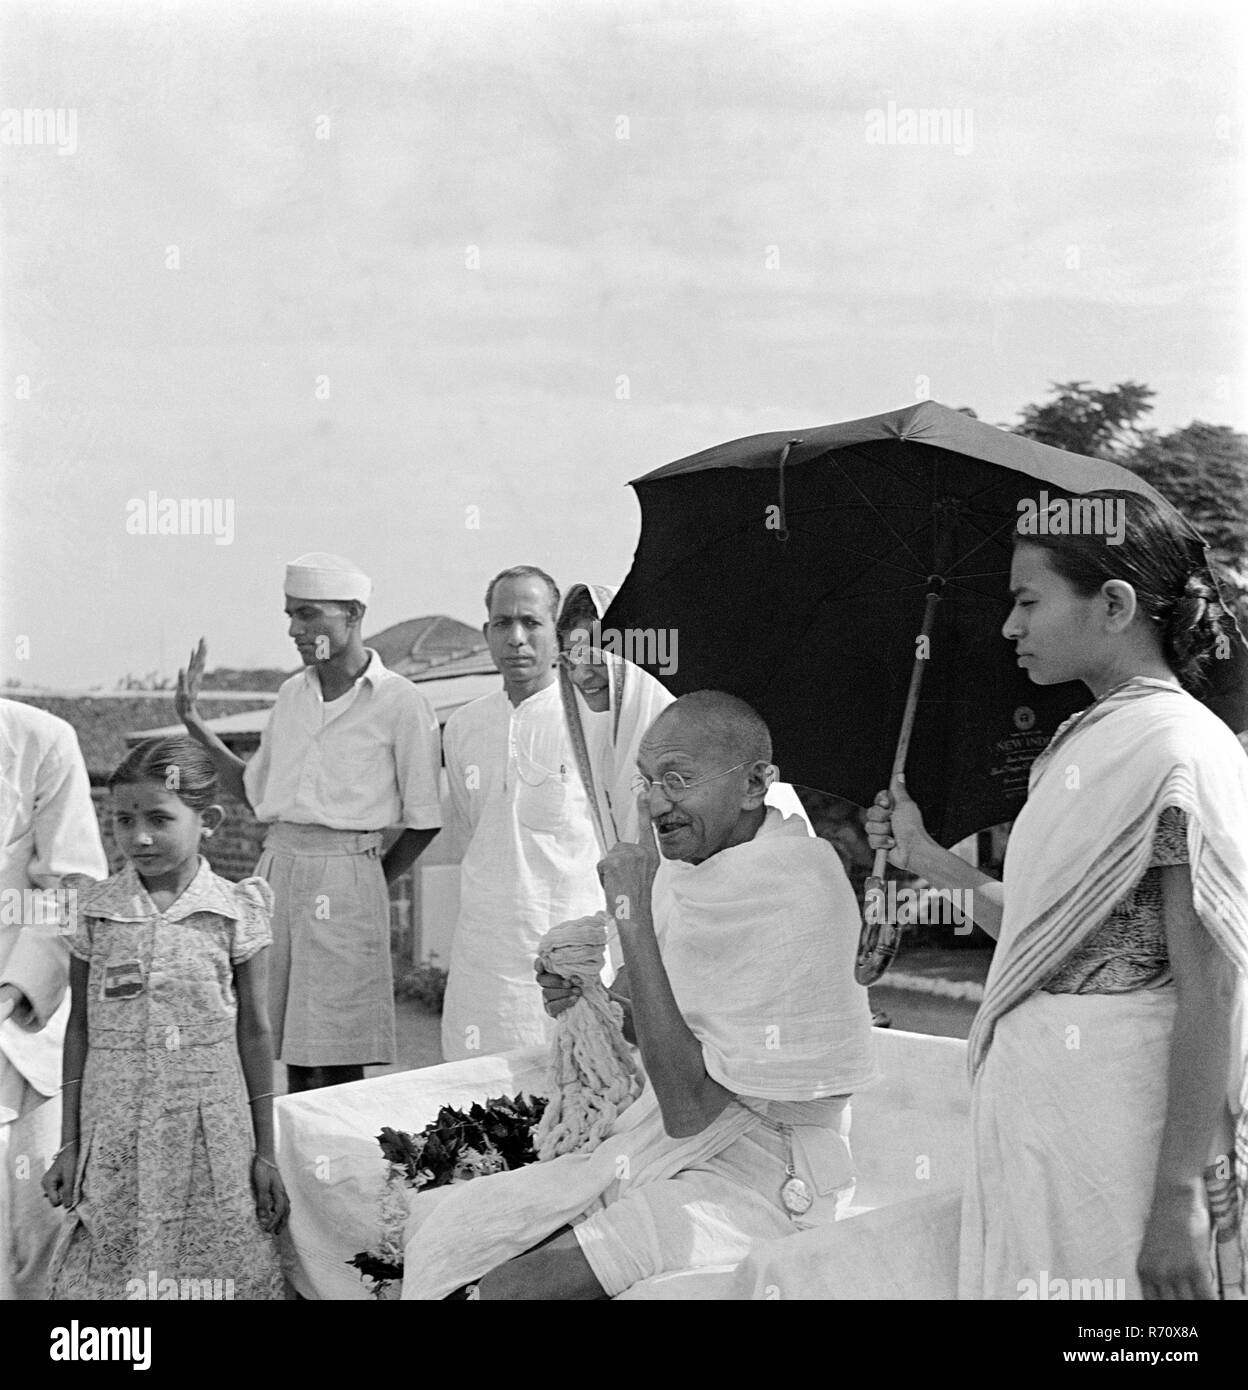 Mahatma Gandhi on his 75th birthday at Pune, Maharashtra, India, October 2, 1944 - MODEL RELEASE NOT AVAILABLE - Stock Image